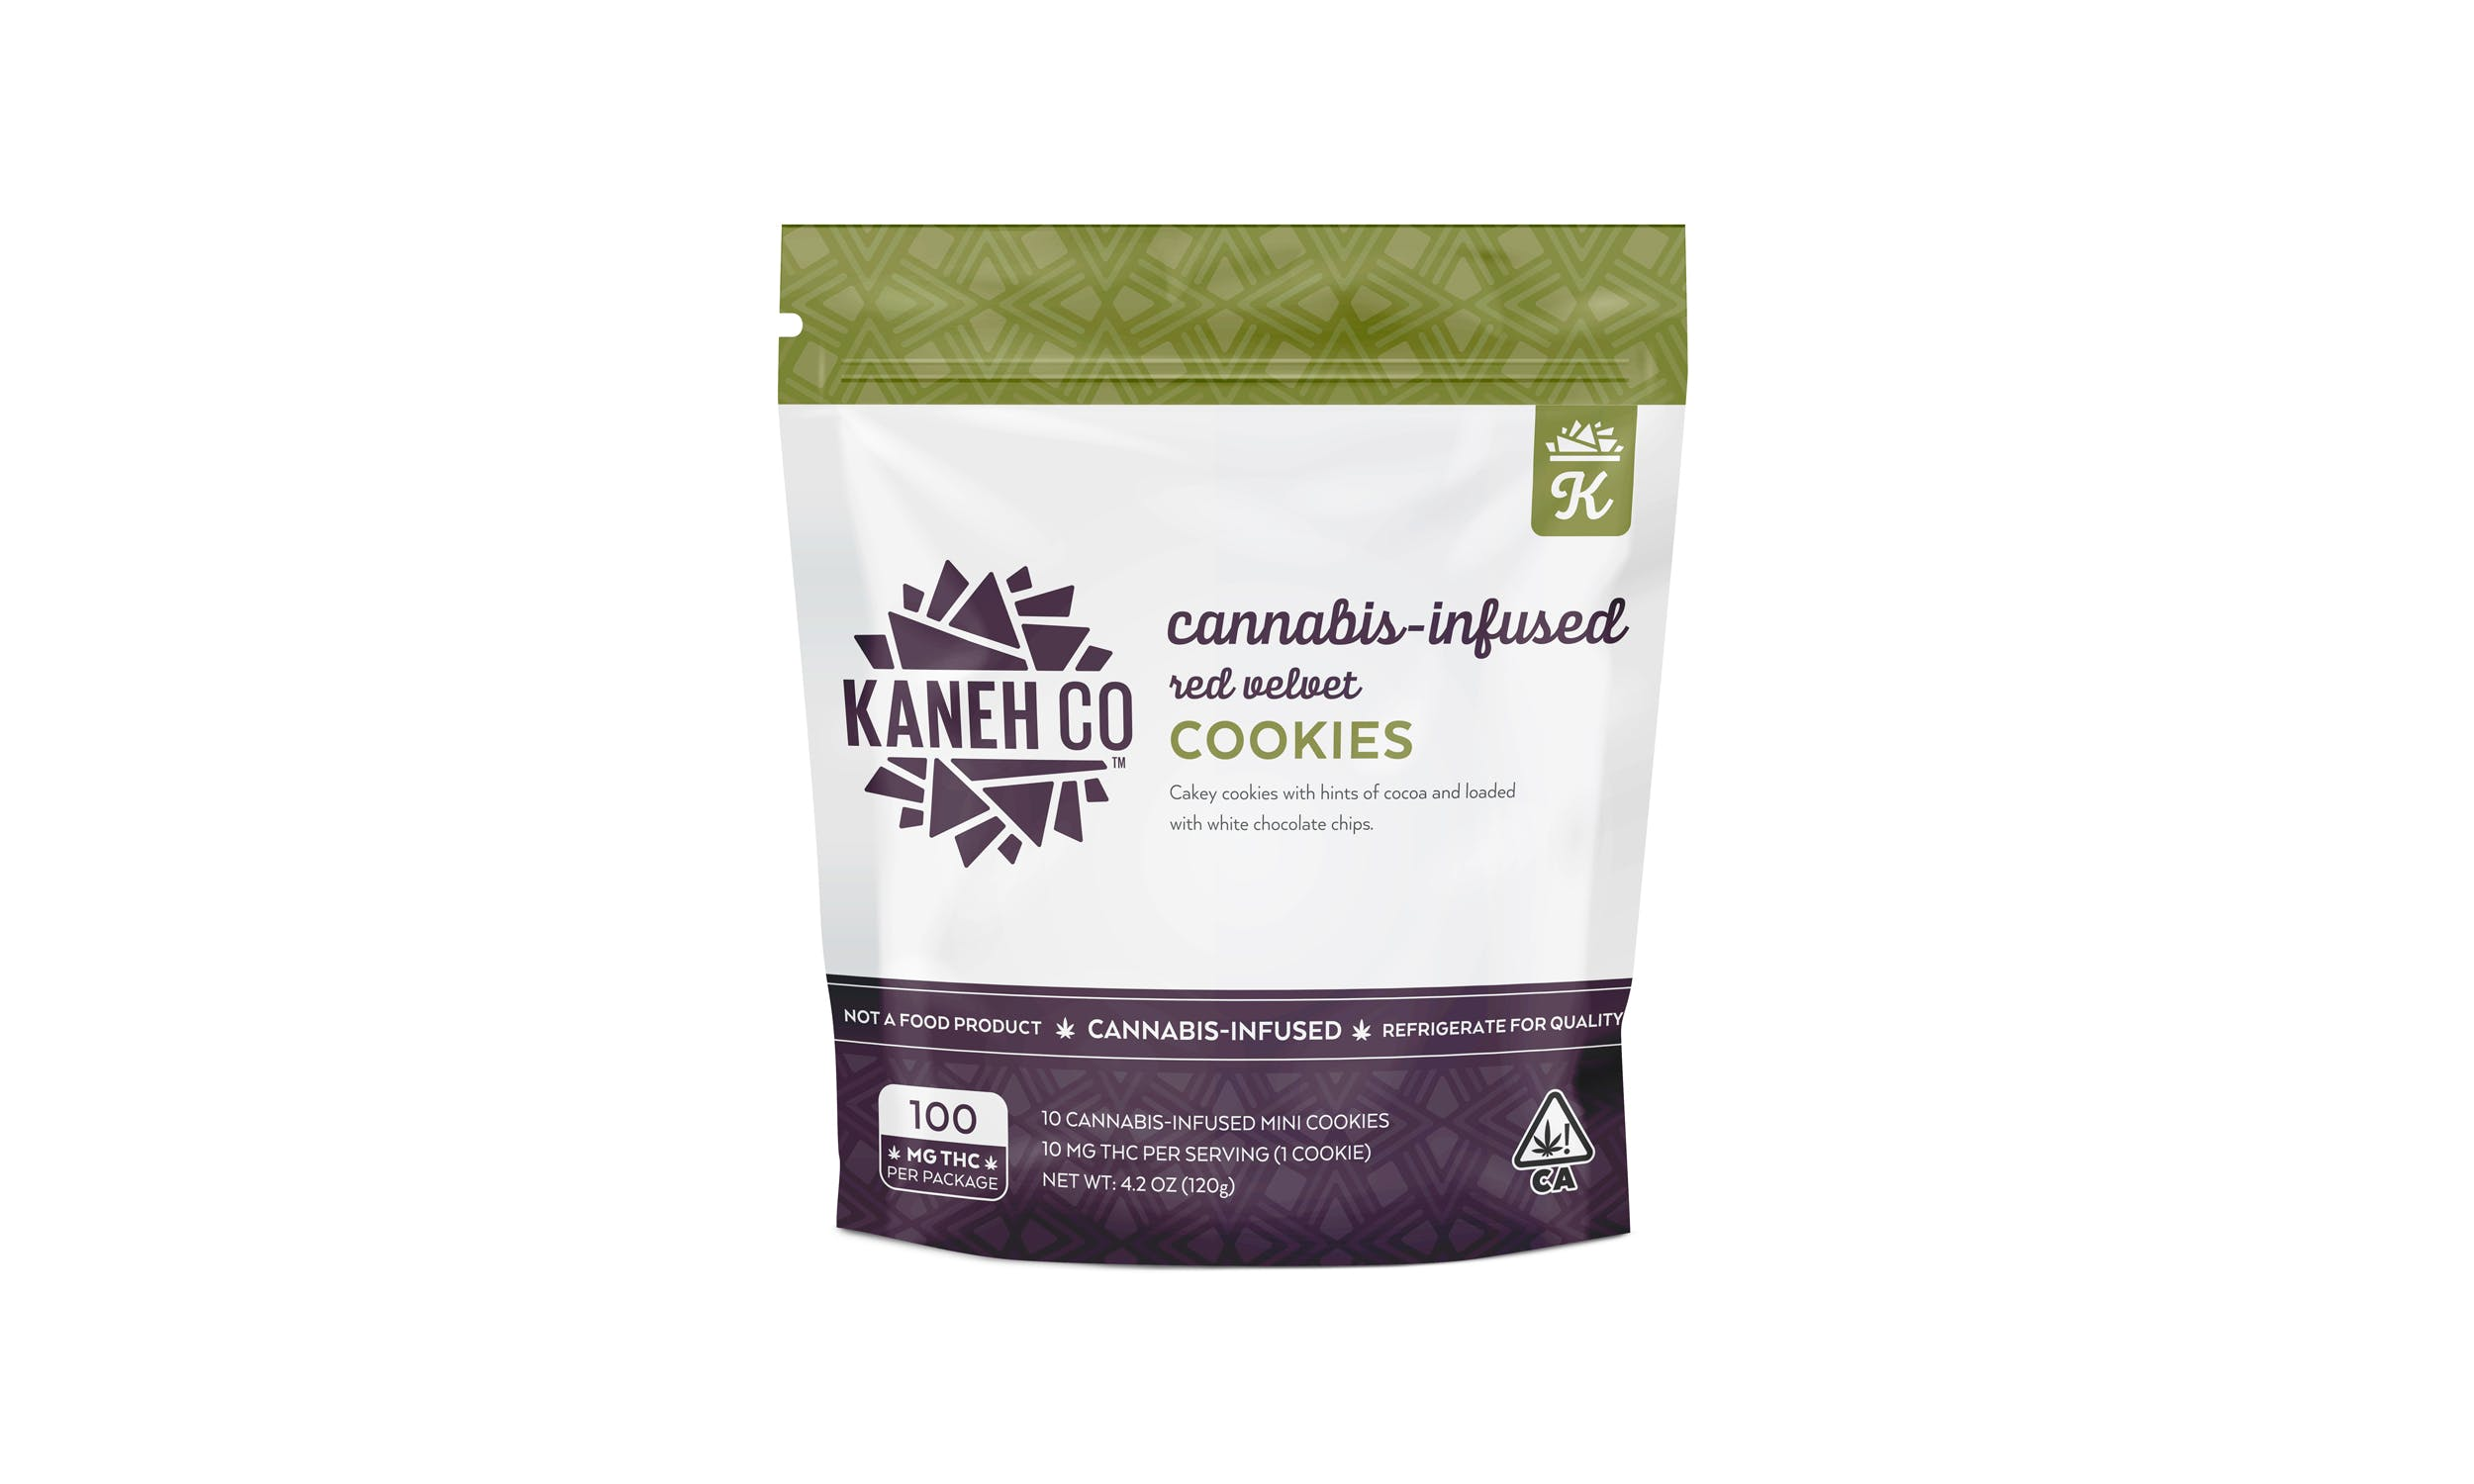 Best Weed Cookies Kaneh Co These Are The Best Weed Cookies Weve Ever Tried